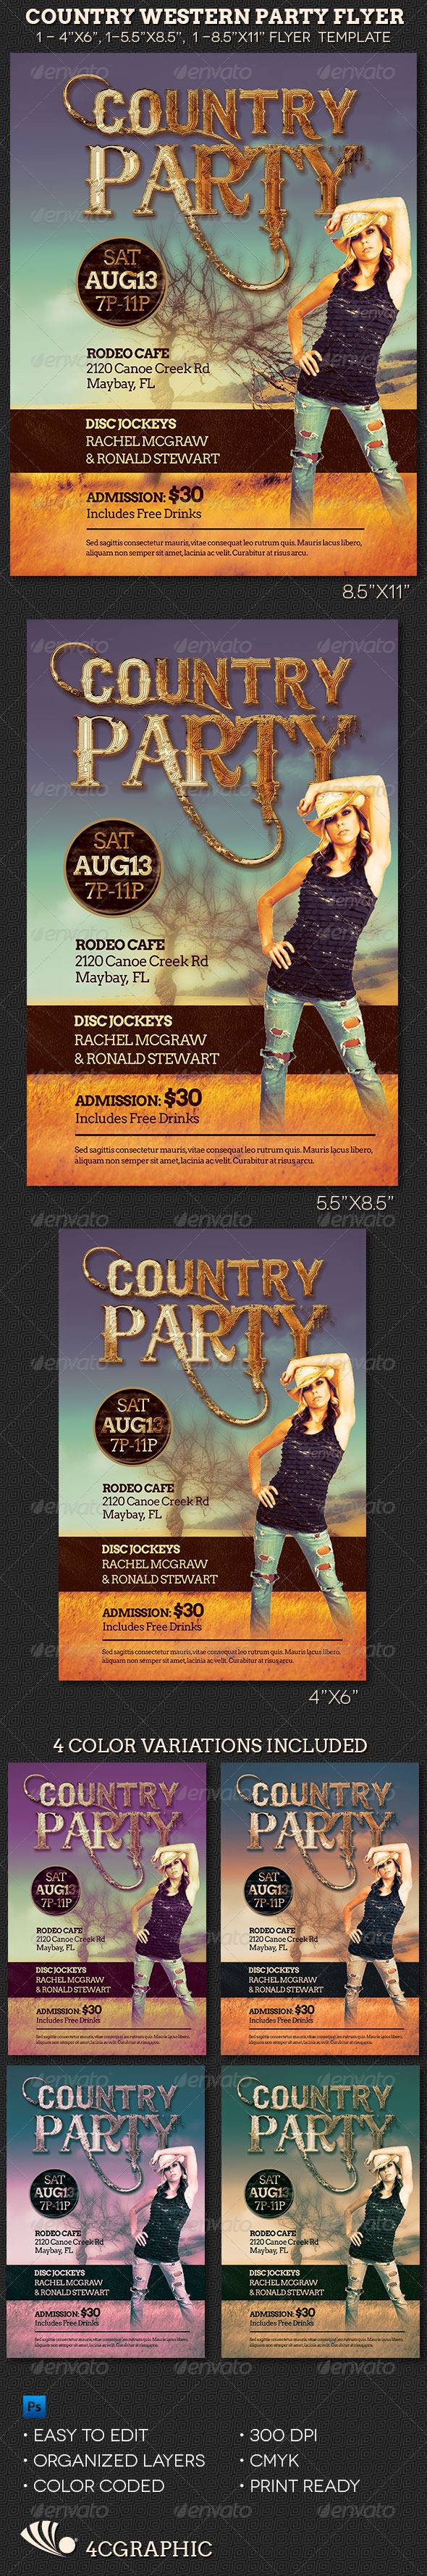 Country Western Party Flyer Template - Flyers Print Templates